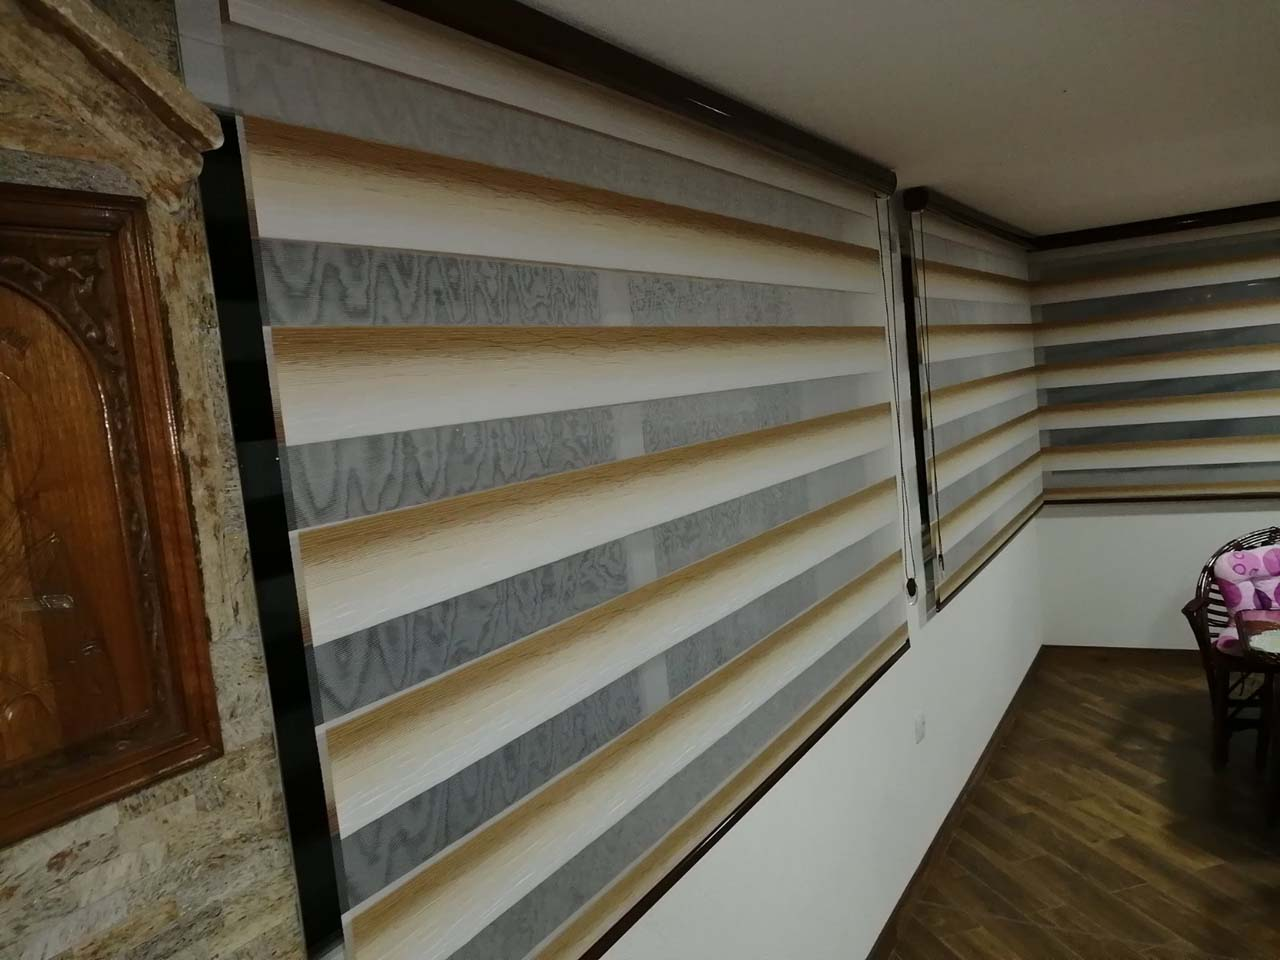 CURTAIN ROLLER BLINDS M ROLL  Awnings, Venetian Blinds, Blinds Kragujevac - Photo 3